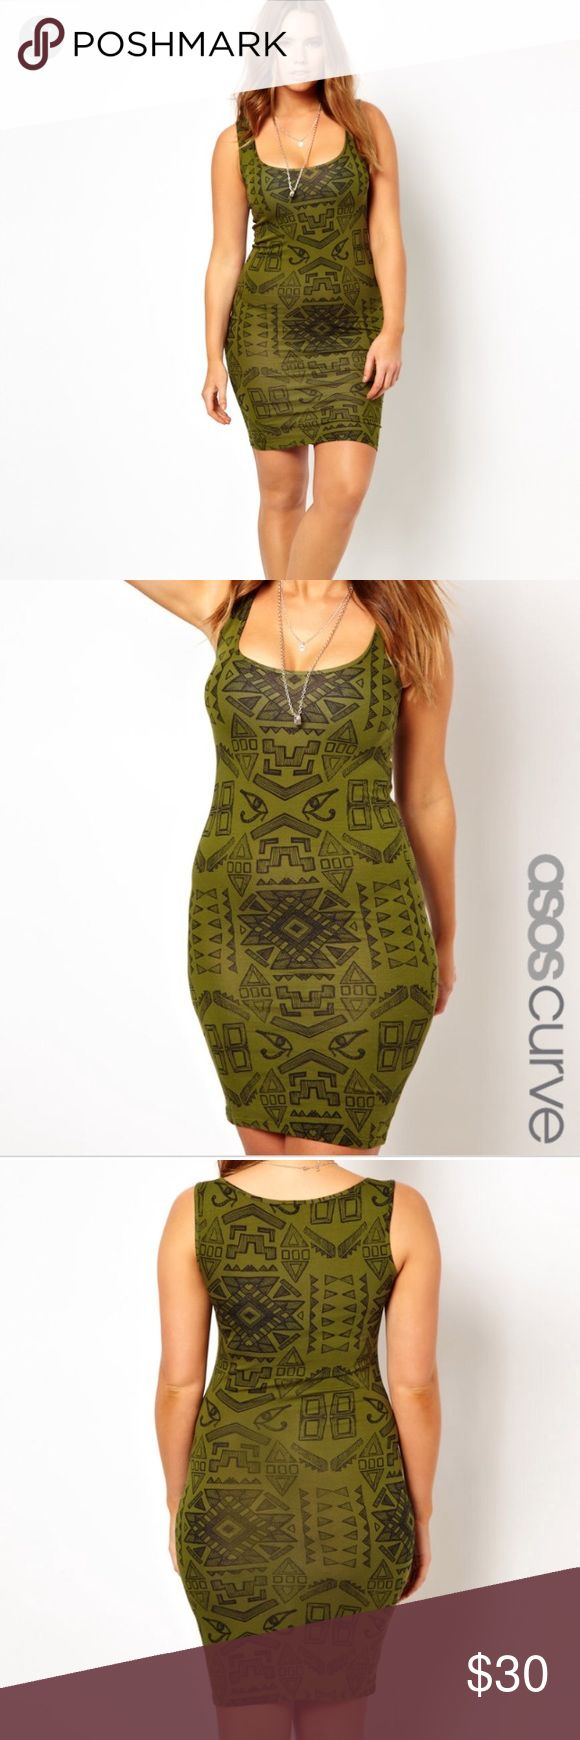 ASOS Curve Egyptian Print Mini Bodycon Dress 18 Size UK 22/ US 18- from ASOS Curve. Mini bodycon dress in Egyptian Print. Excellent, like new condition! ASOS Curve Dresses Mini